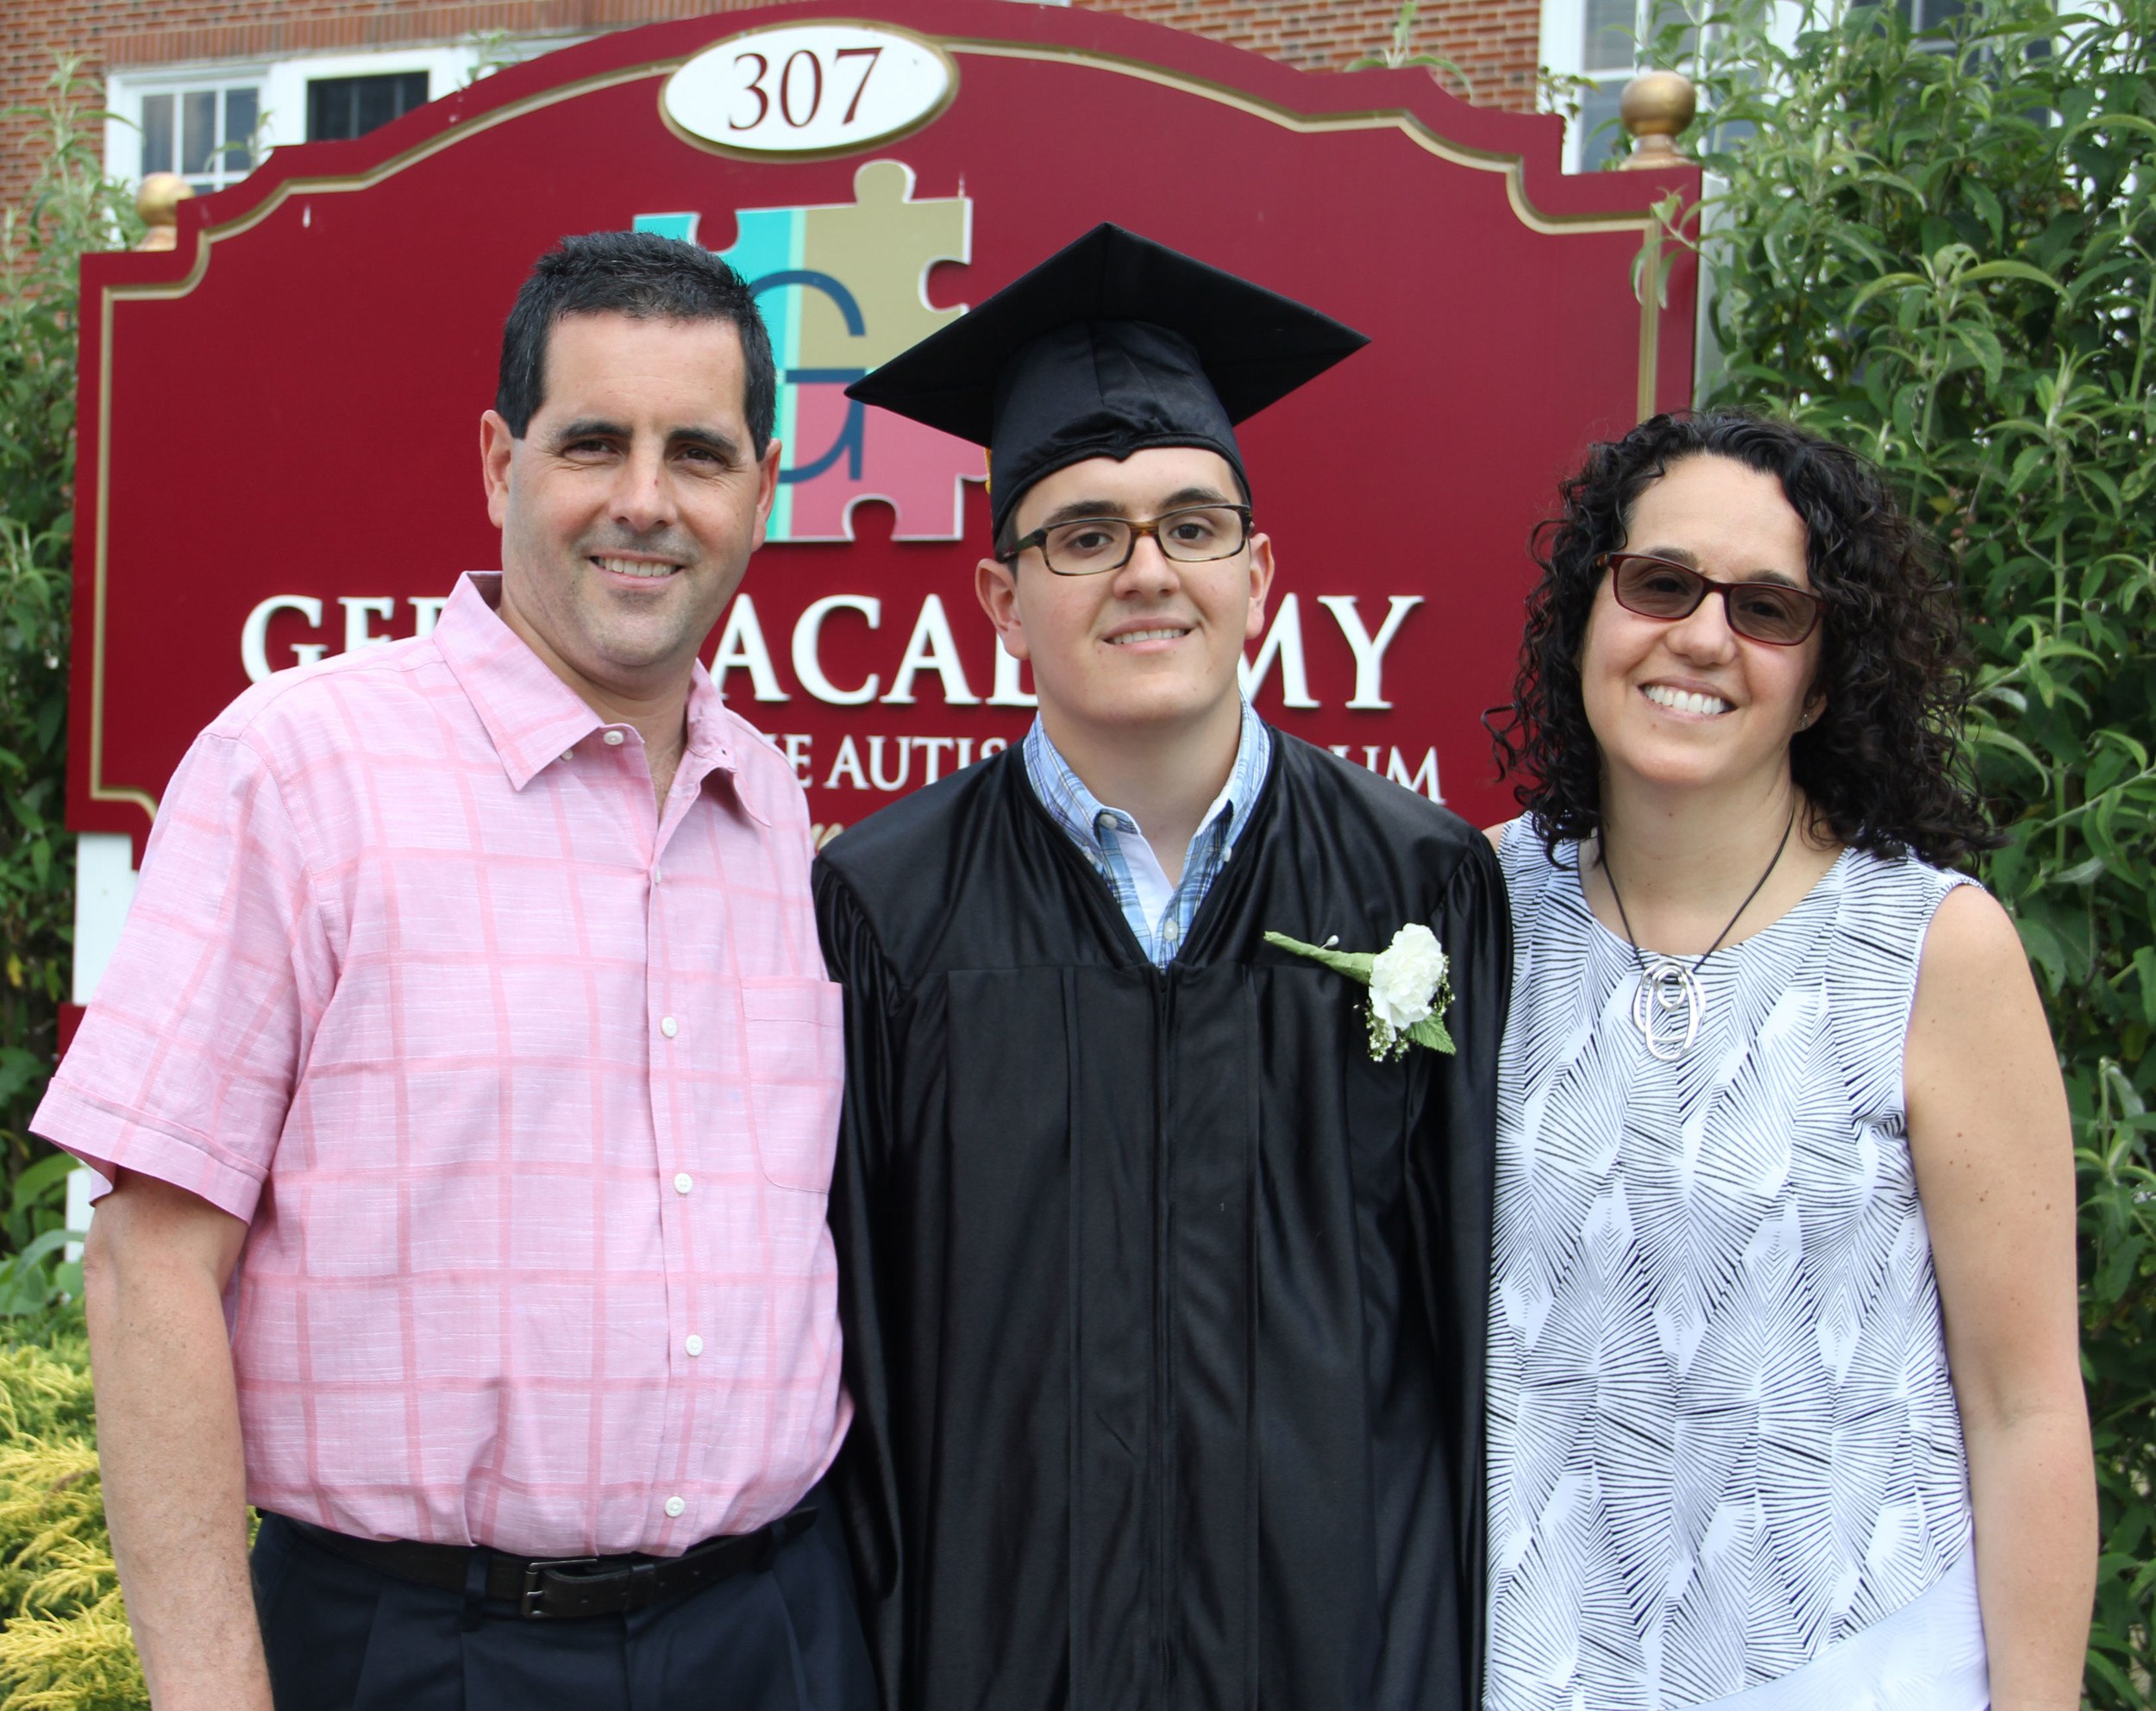 Matthew Hamilton, Gersh Academy graduate, is flanked by his parents, Susan and Larry Hamilton, after he received his high school diploma. The Franklin Square resident will go onto Adelphi in the fall.